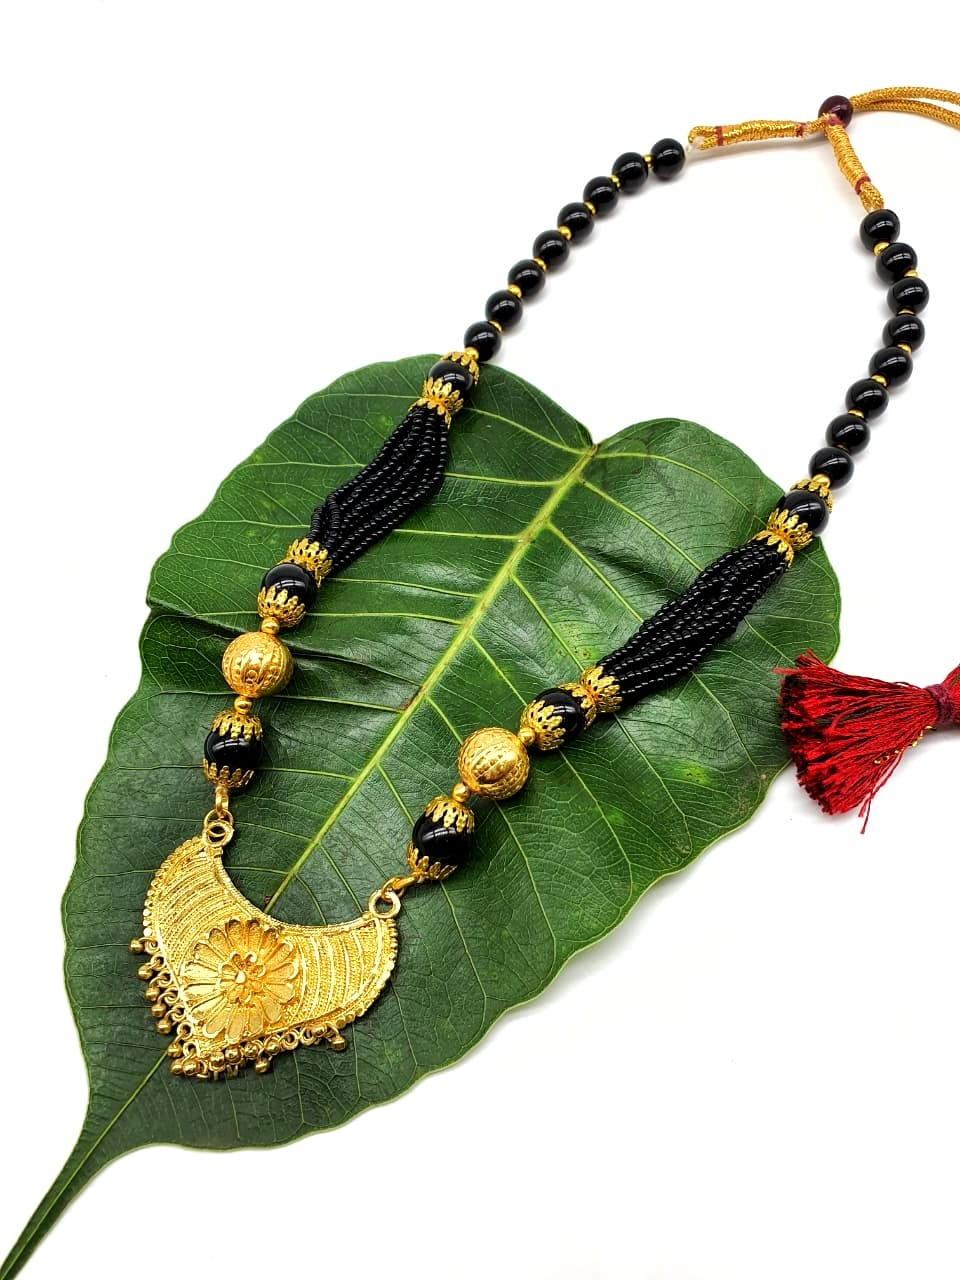 Short Mangalsutra Designs Gold Plated Latest Traditional Big Black Bead Multi Strand Layer Mangalsutra - DigitalDressRoom